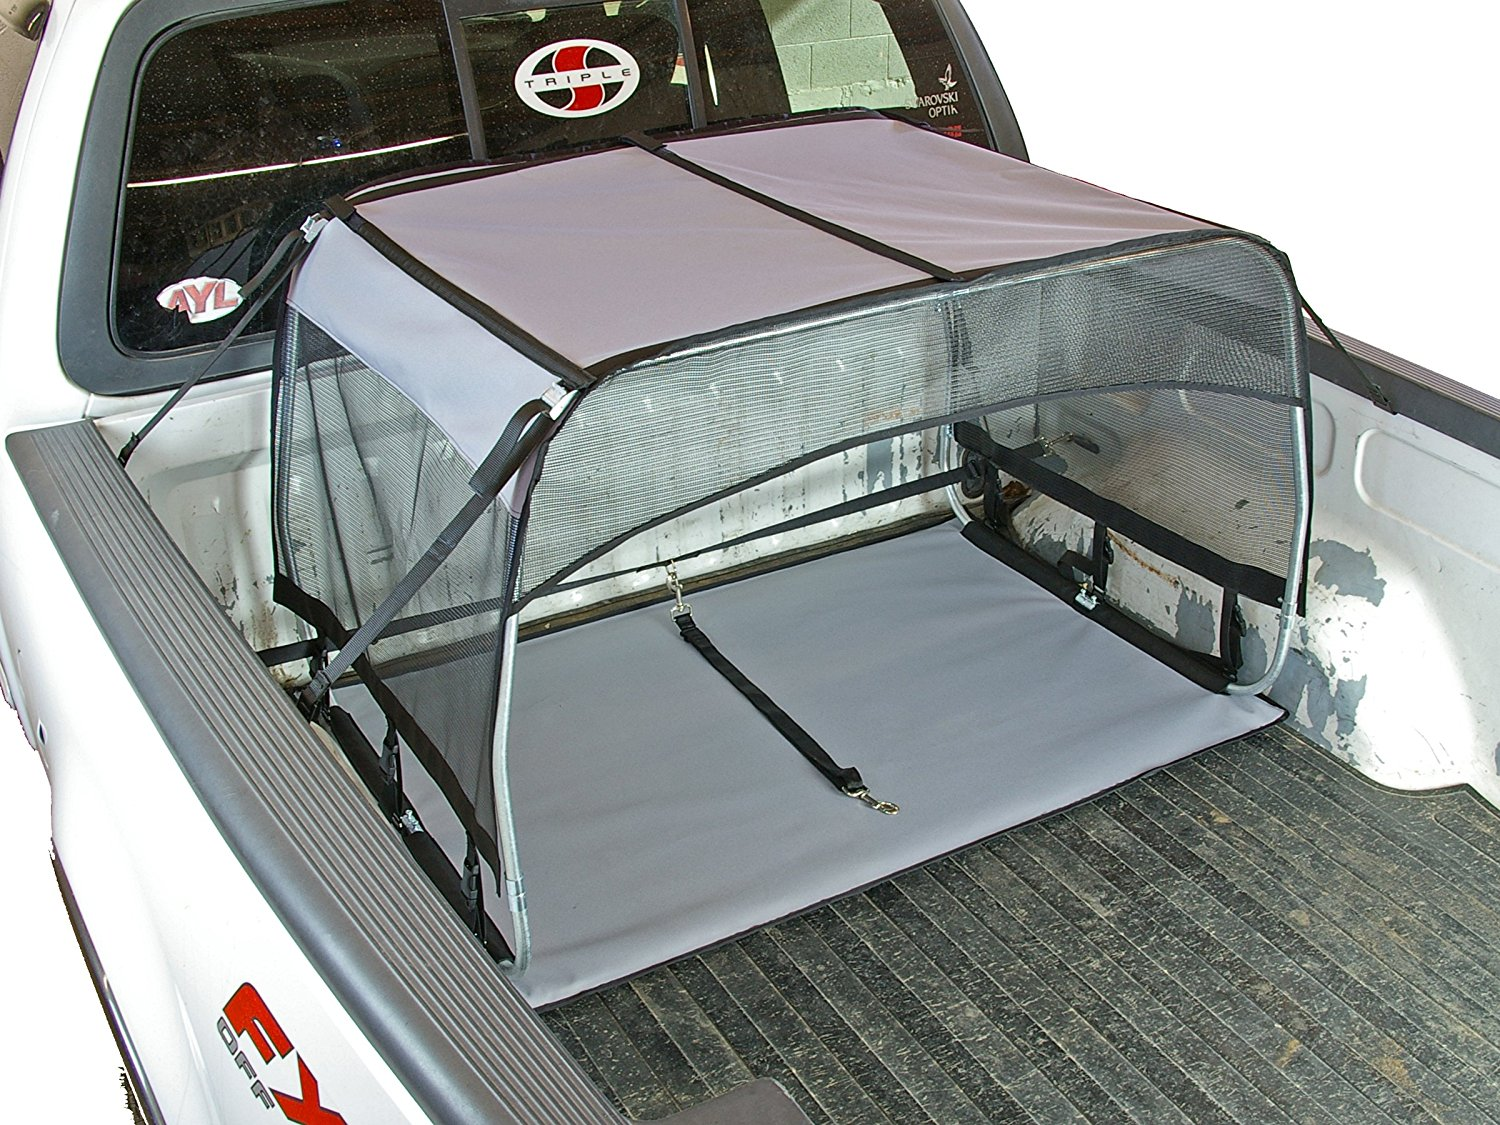 Best Tent For Camping ...